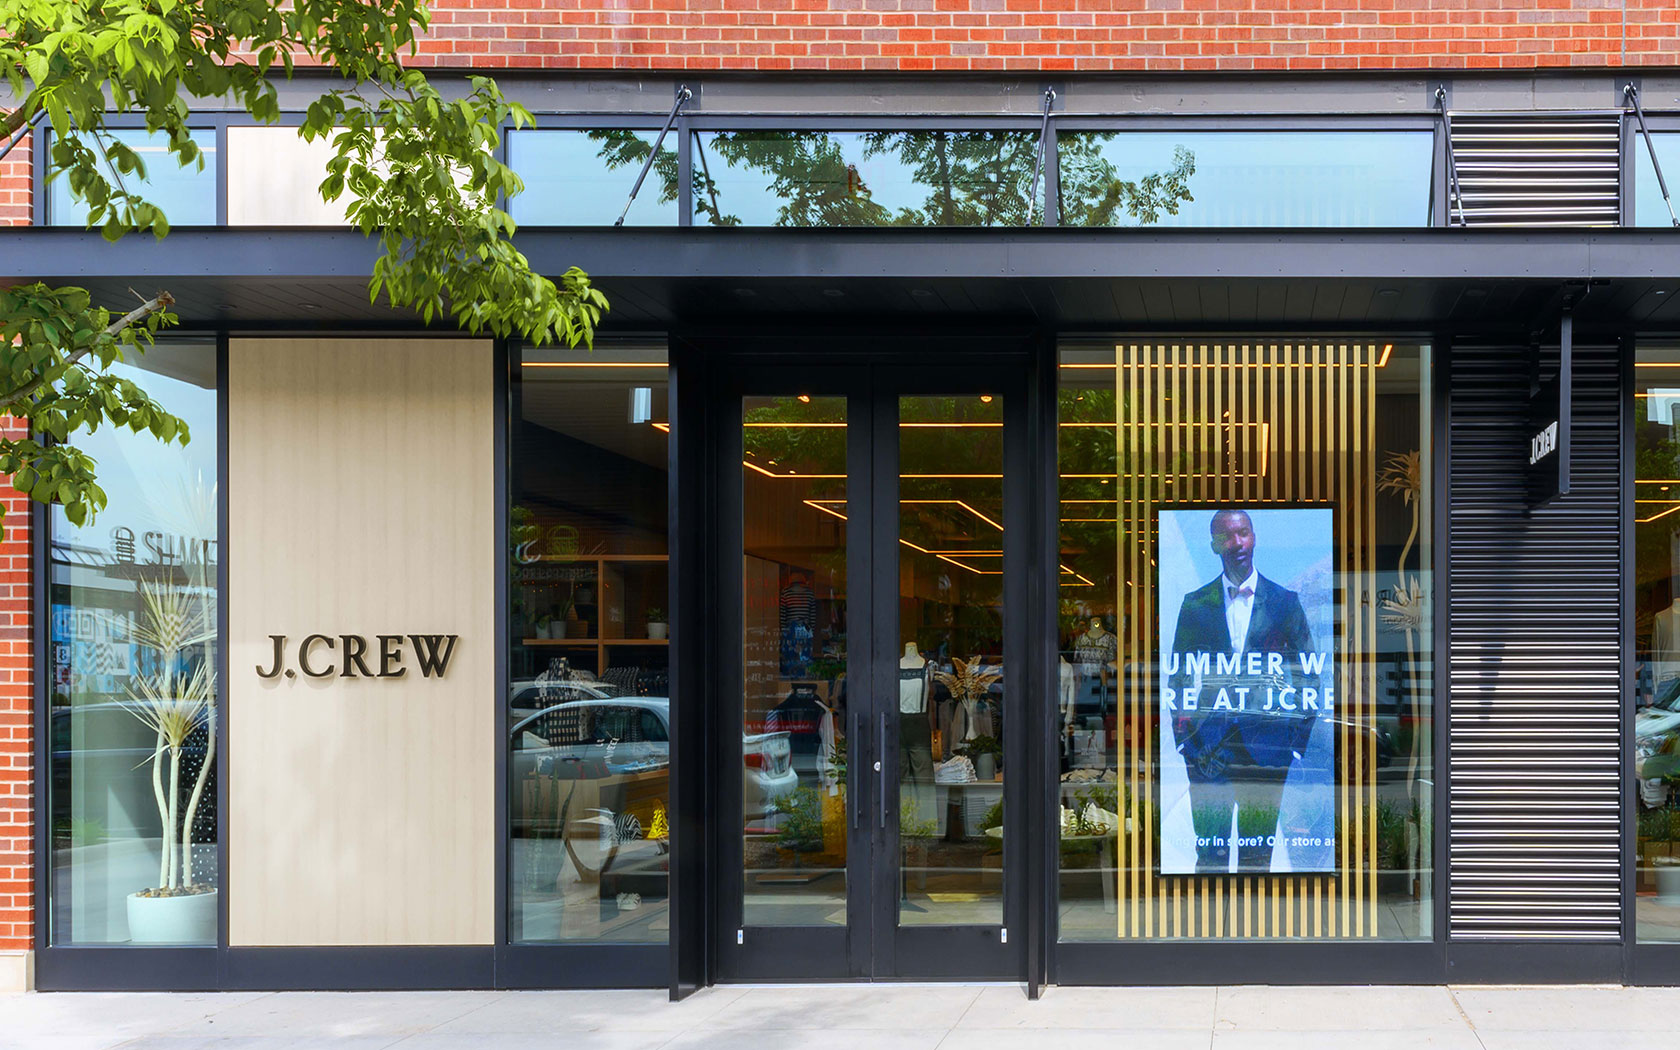 Blackened steel and glass combine with wood veneer and brick to create the facade of J Crew's newly designed store.